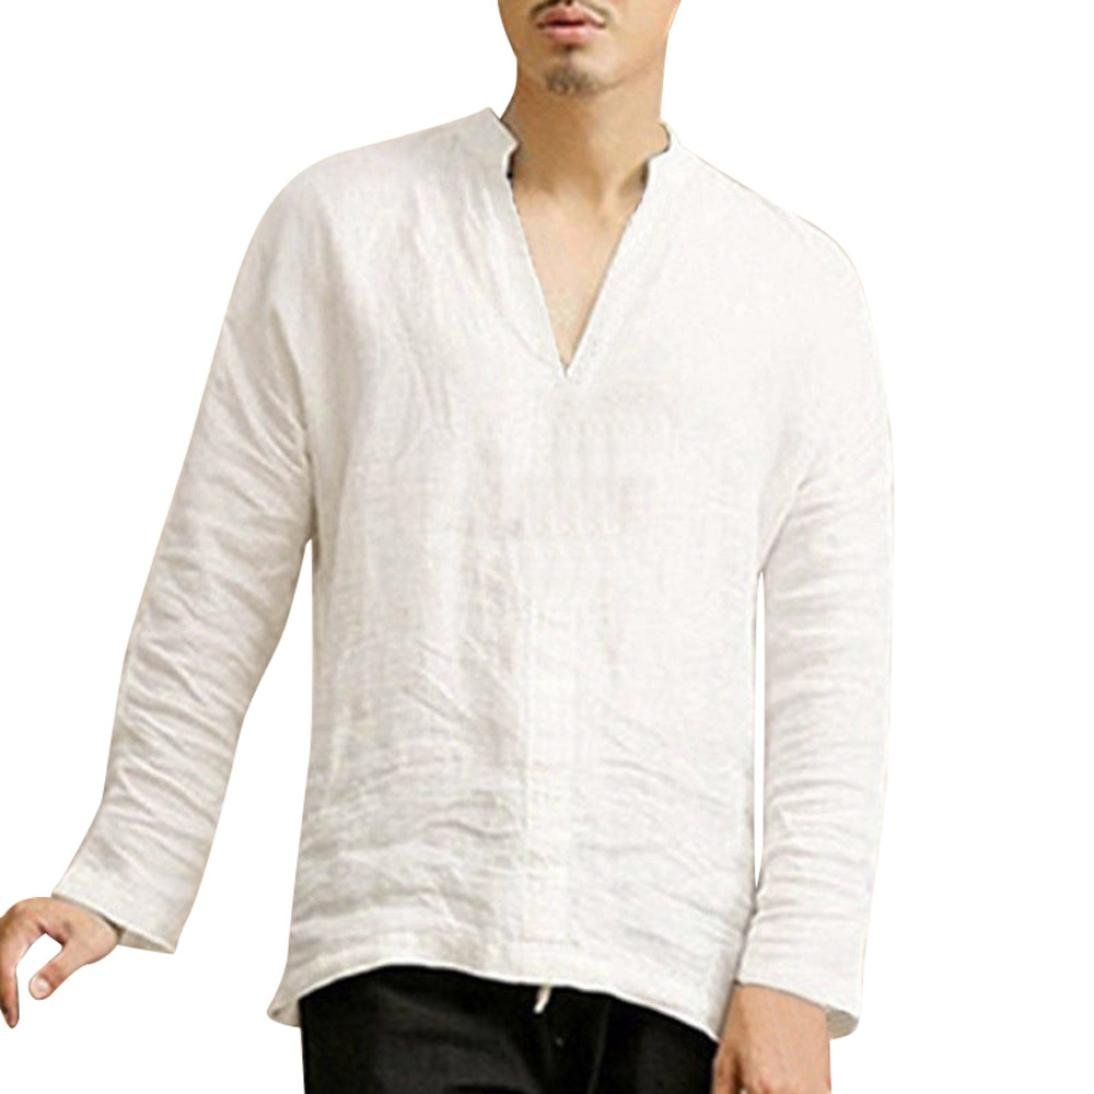 Wintialy Mens Baggy Linen Long Sleeve Summer Cotton Retro V Neck T Shirts Tops Blouse